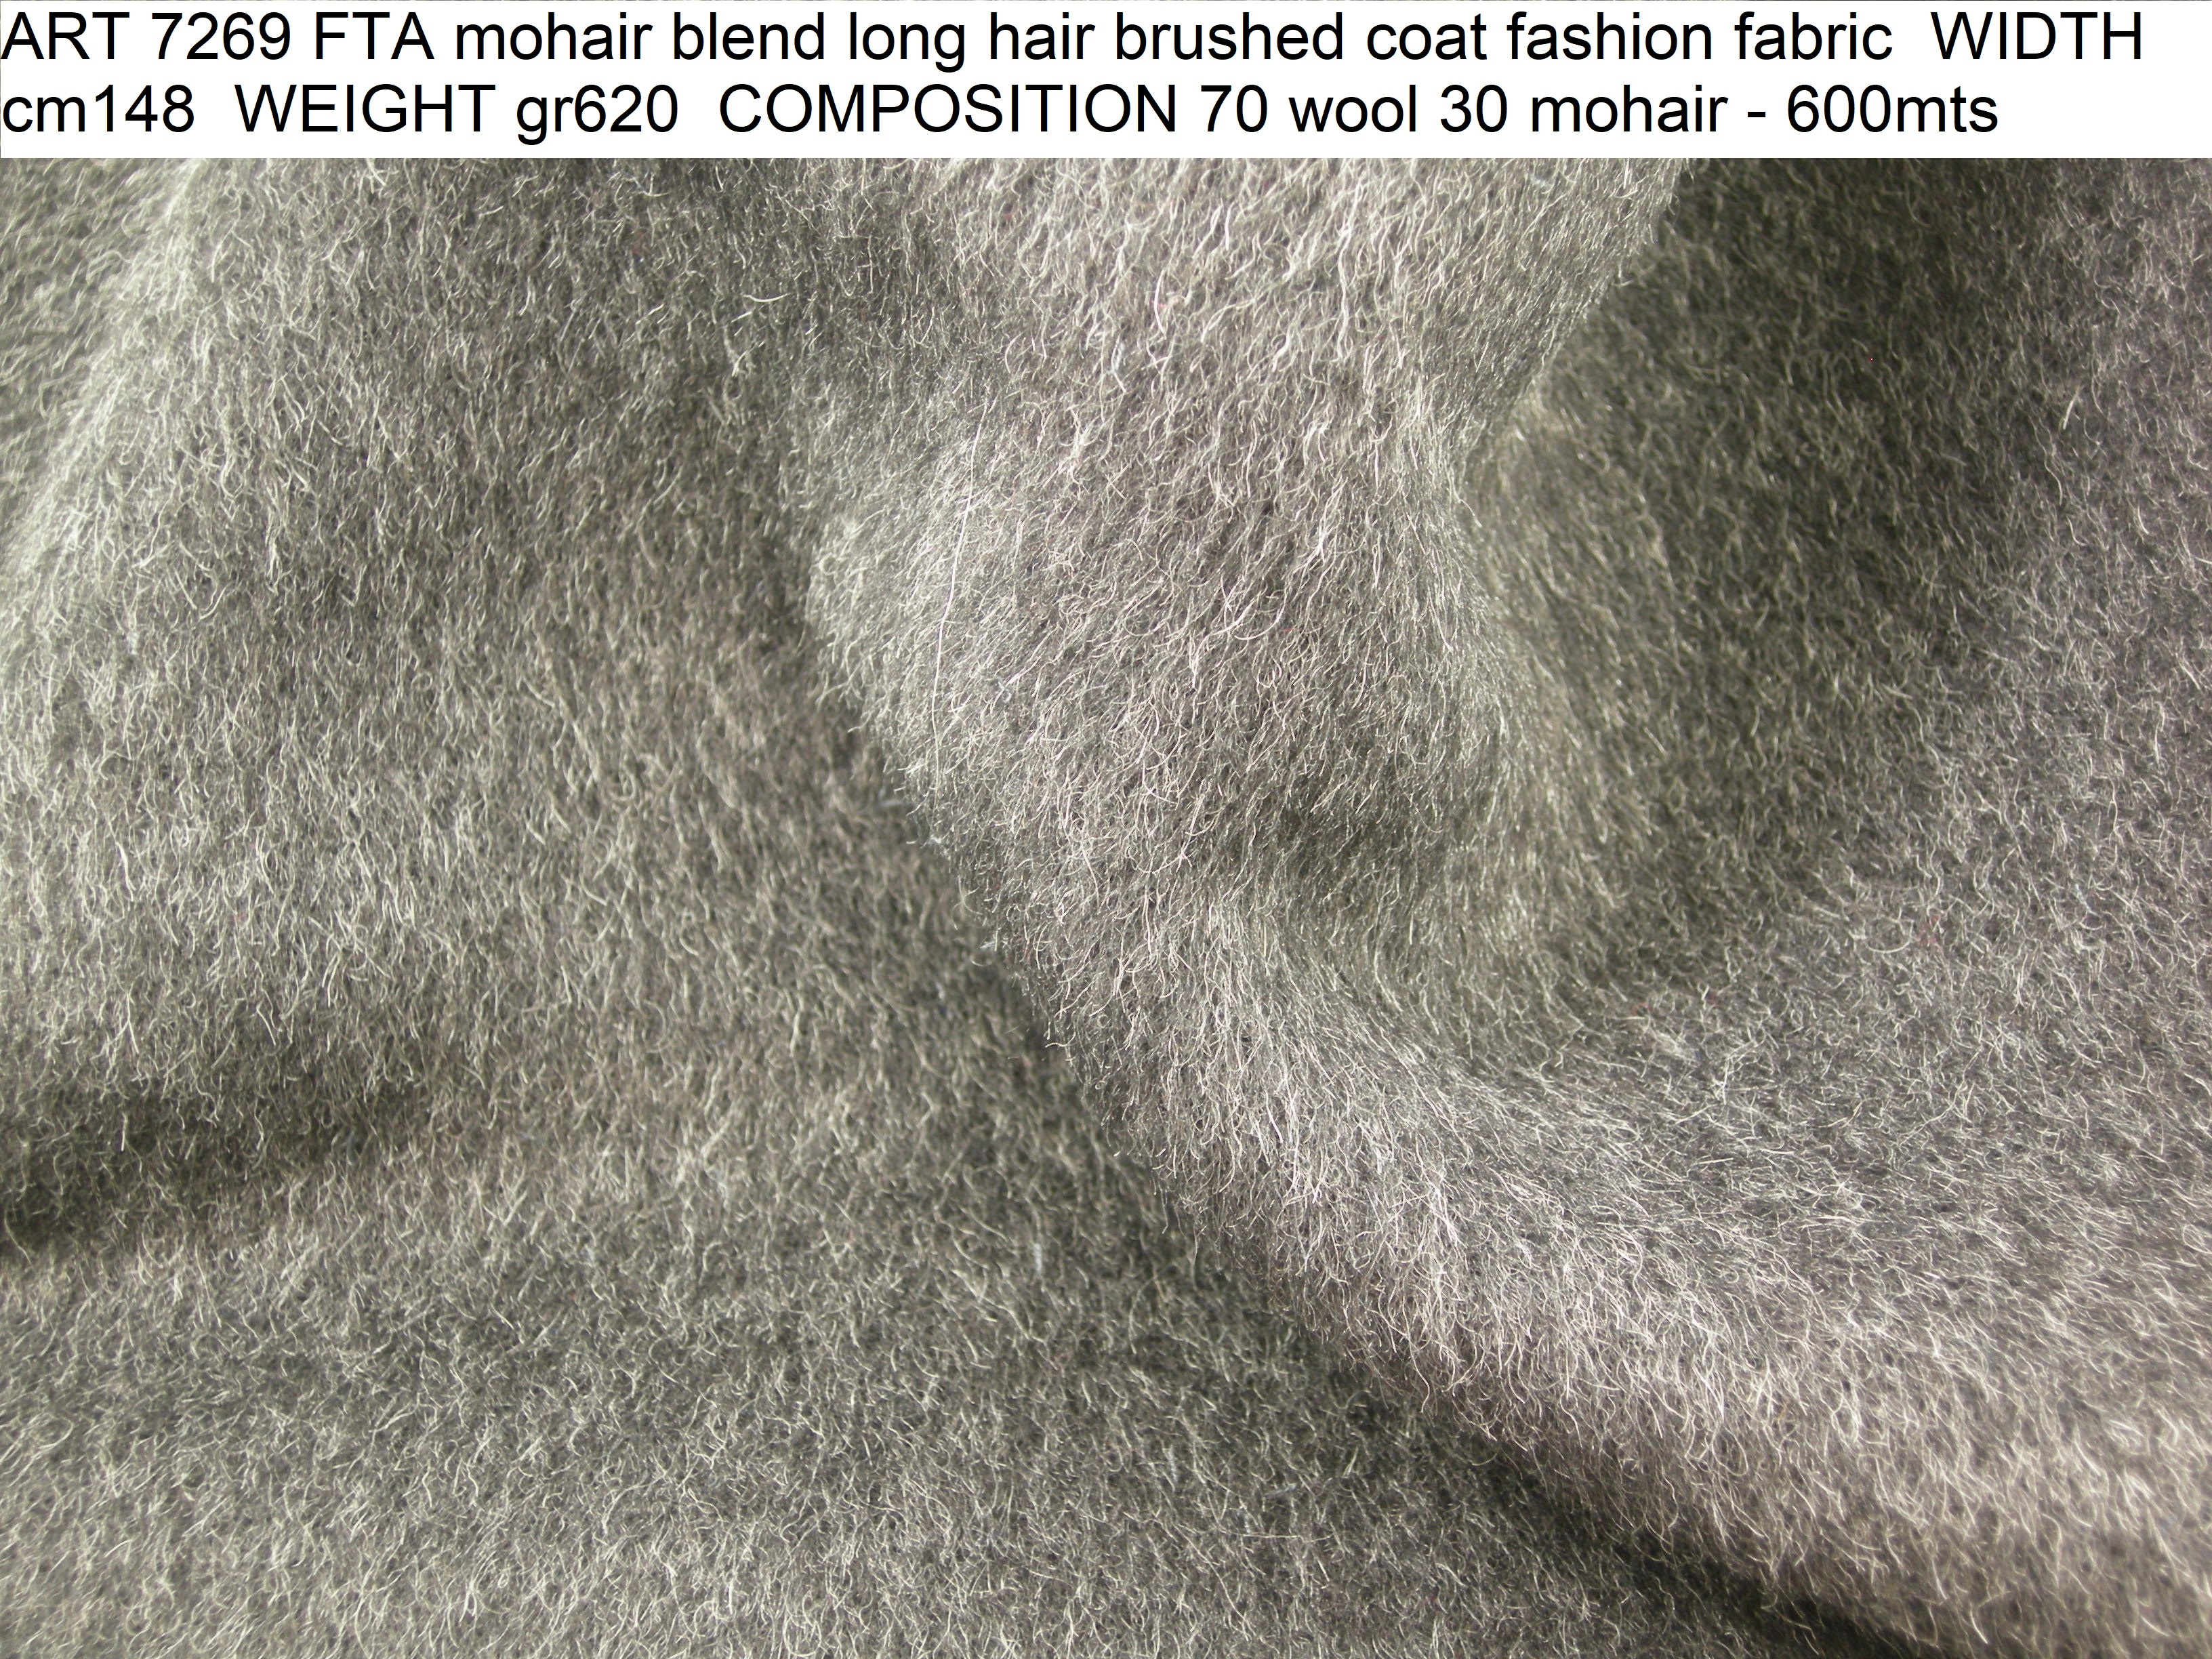 ART 7269 FTA mohair blend long hair brushed coat fashion fabric WIDTH cm148 WEIGHT gr620 COMPOSITION 70 wool 30 mohair - 600mts